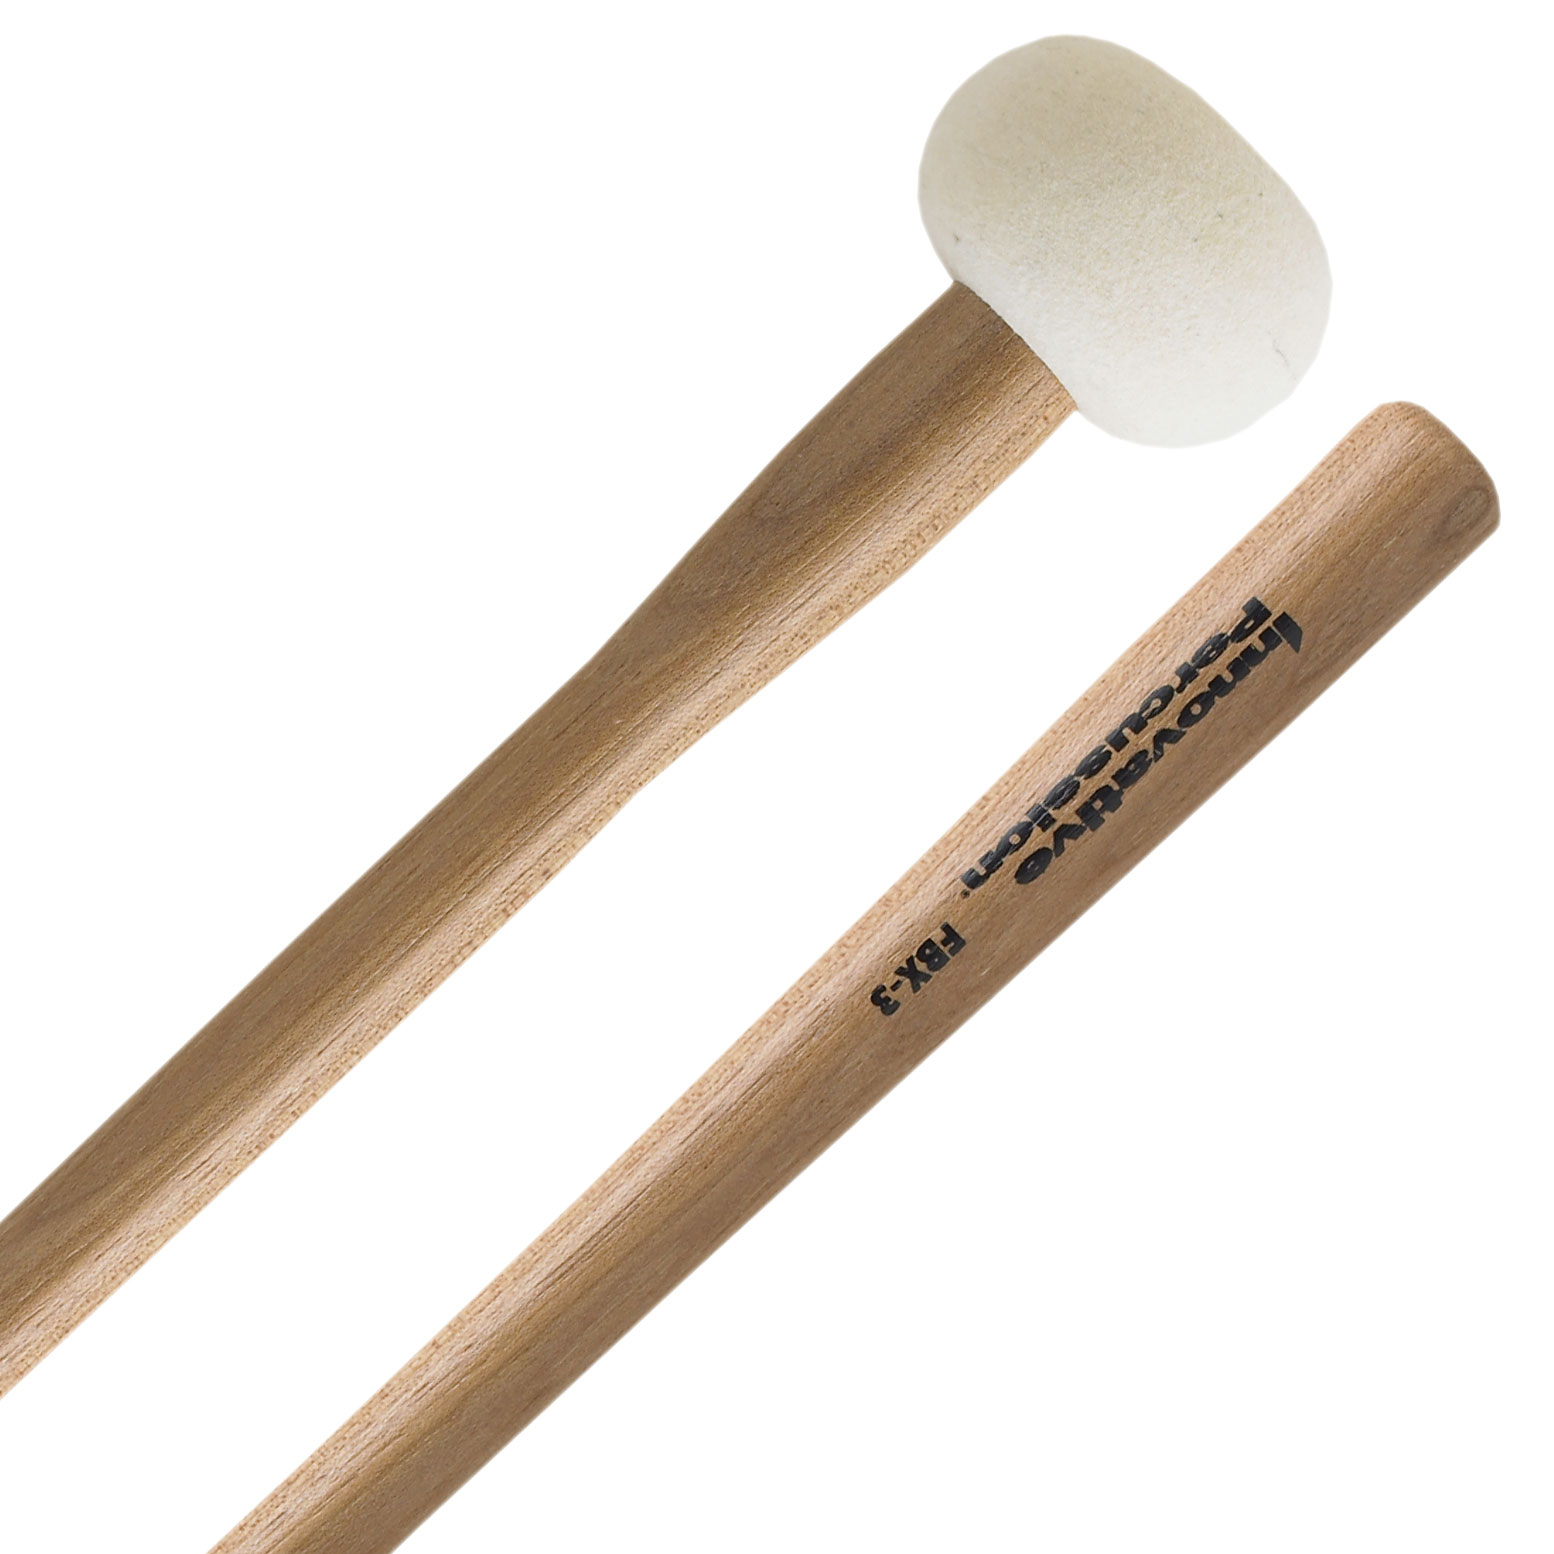 Innovative Percussion FBX-3 Field Series Tapered Handle Marching Bass Drum Mallets